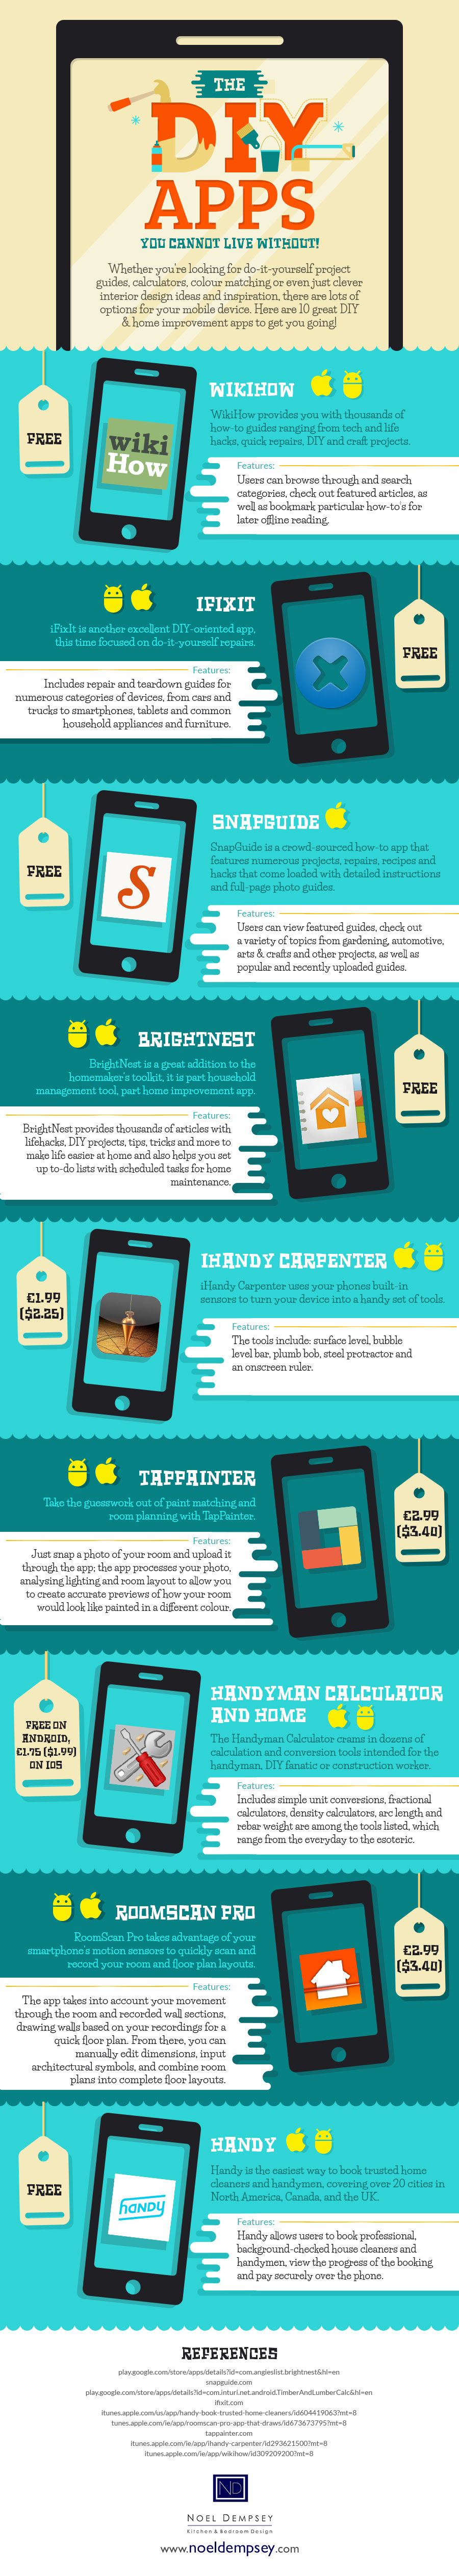 Best Home Maintenance and DIY Apps